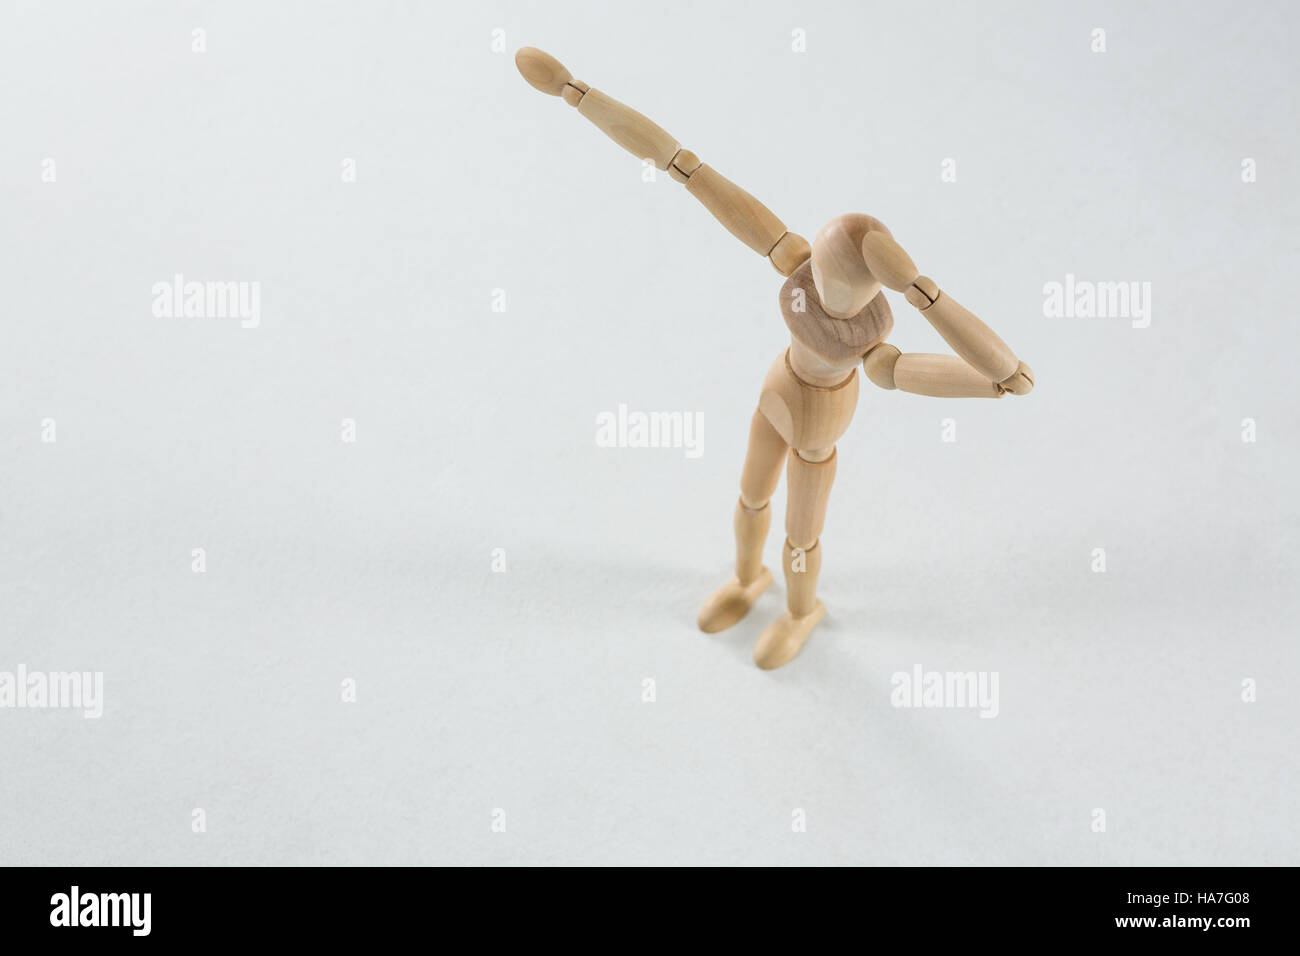 Wooden figurine shocked and pointing - Stock Image